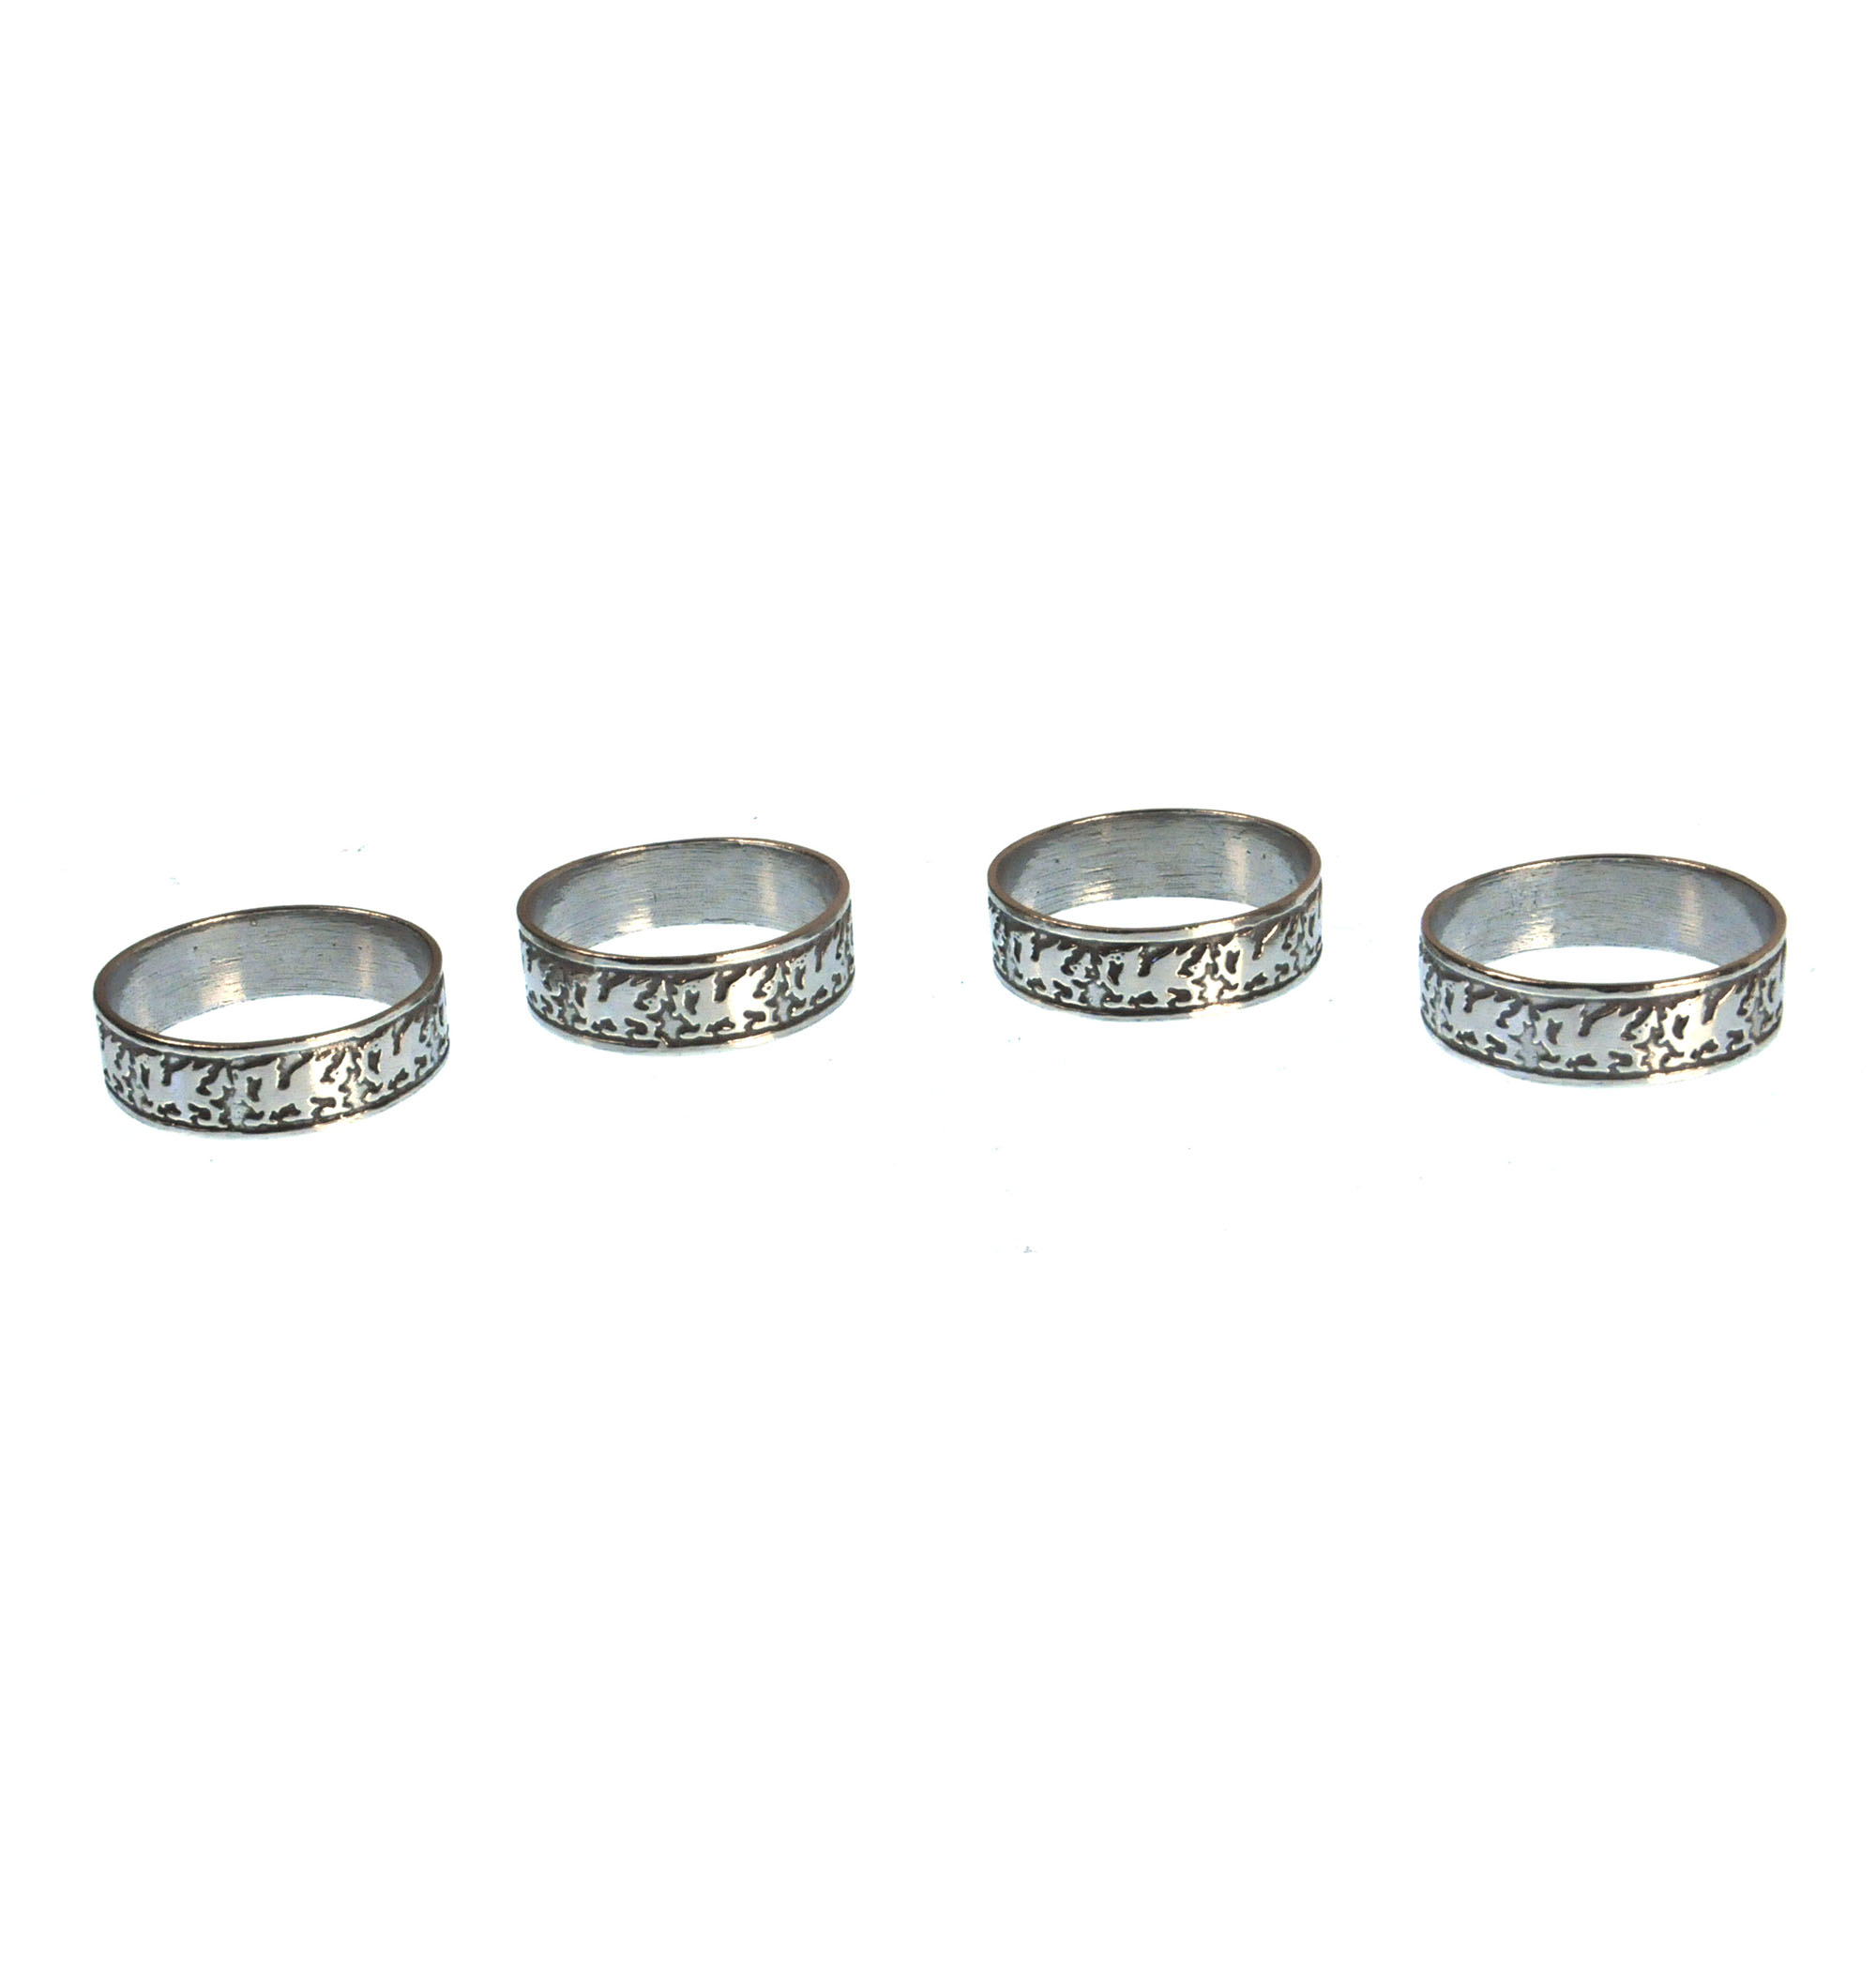 pewter jewelry buy wedding antique rings category pretty simple online exquisite